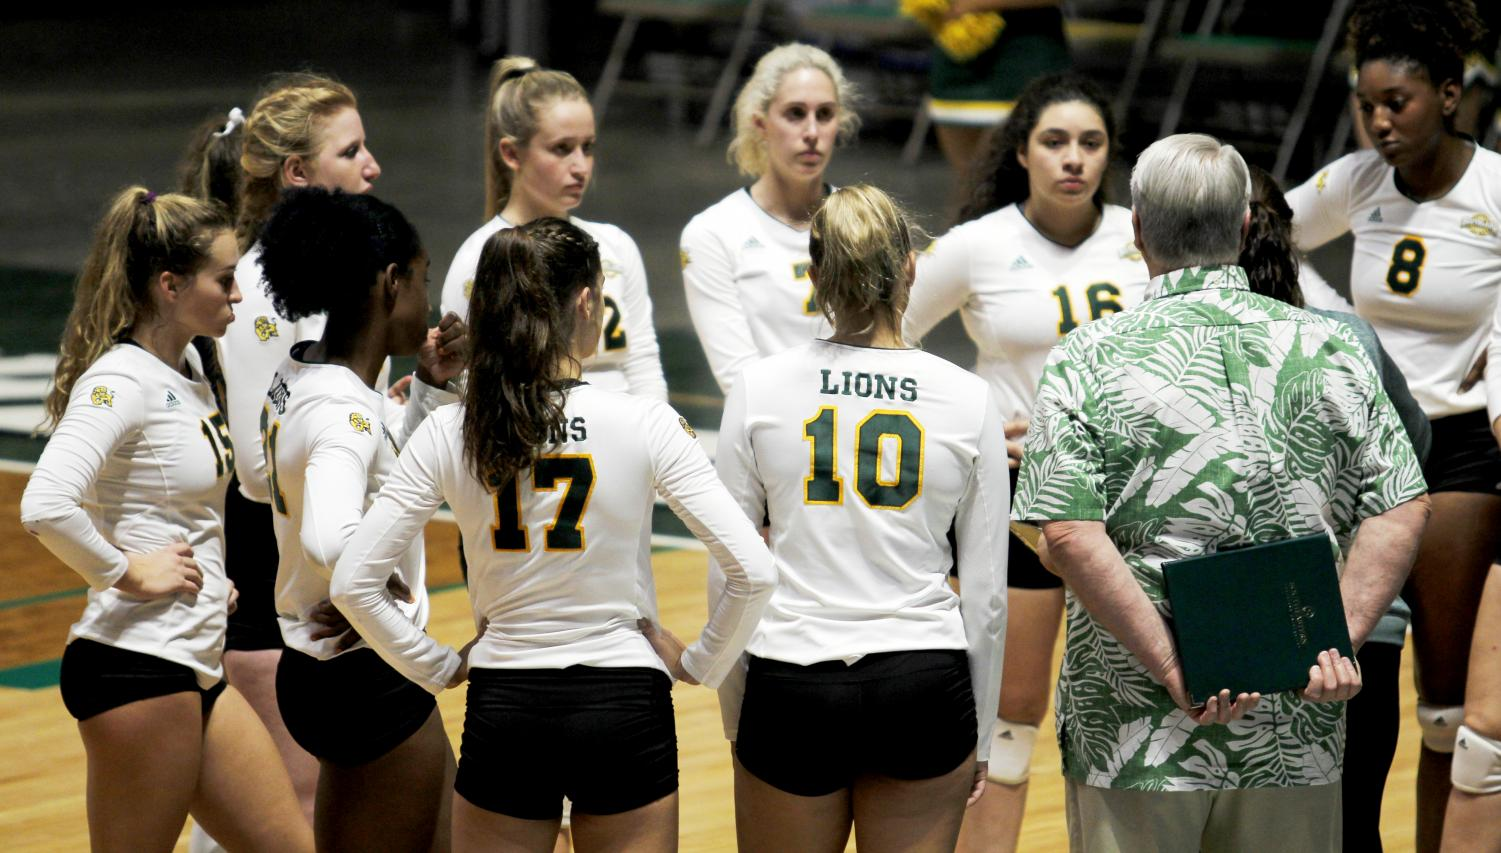 After a 2-27 record for the volleyball team in 2018, the Lady Lions look to change the volleyball culture at the university. Head Coach Jermey White hopes to see improvements in the 2019 season.